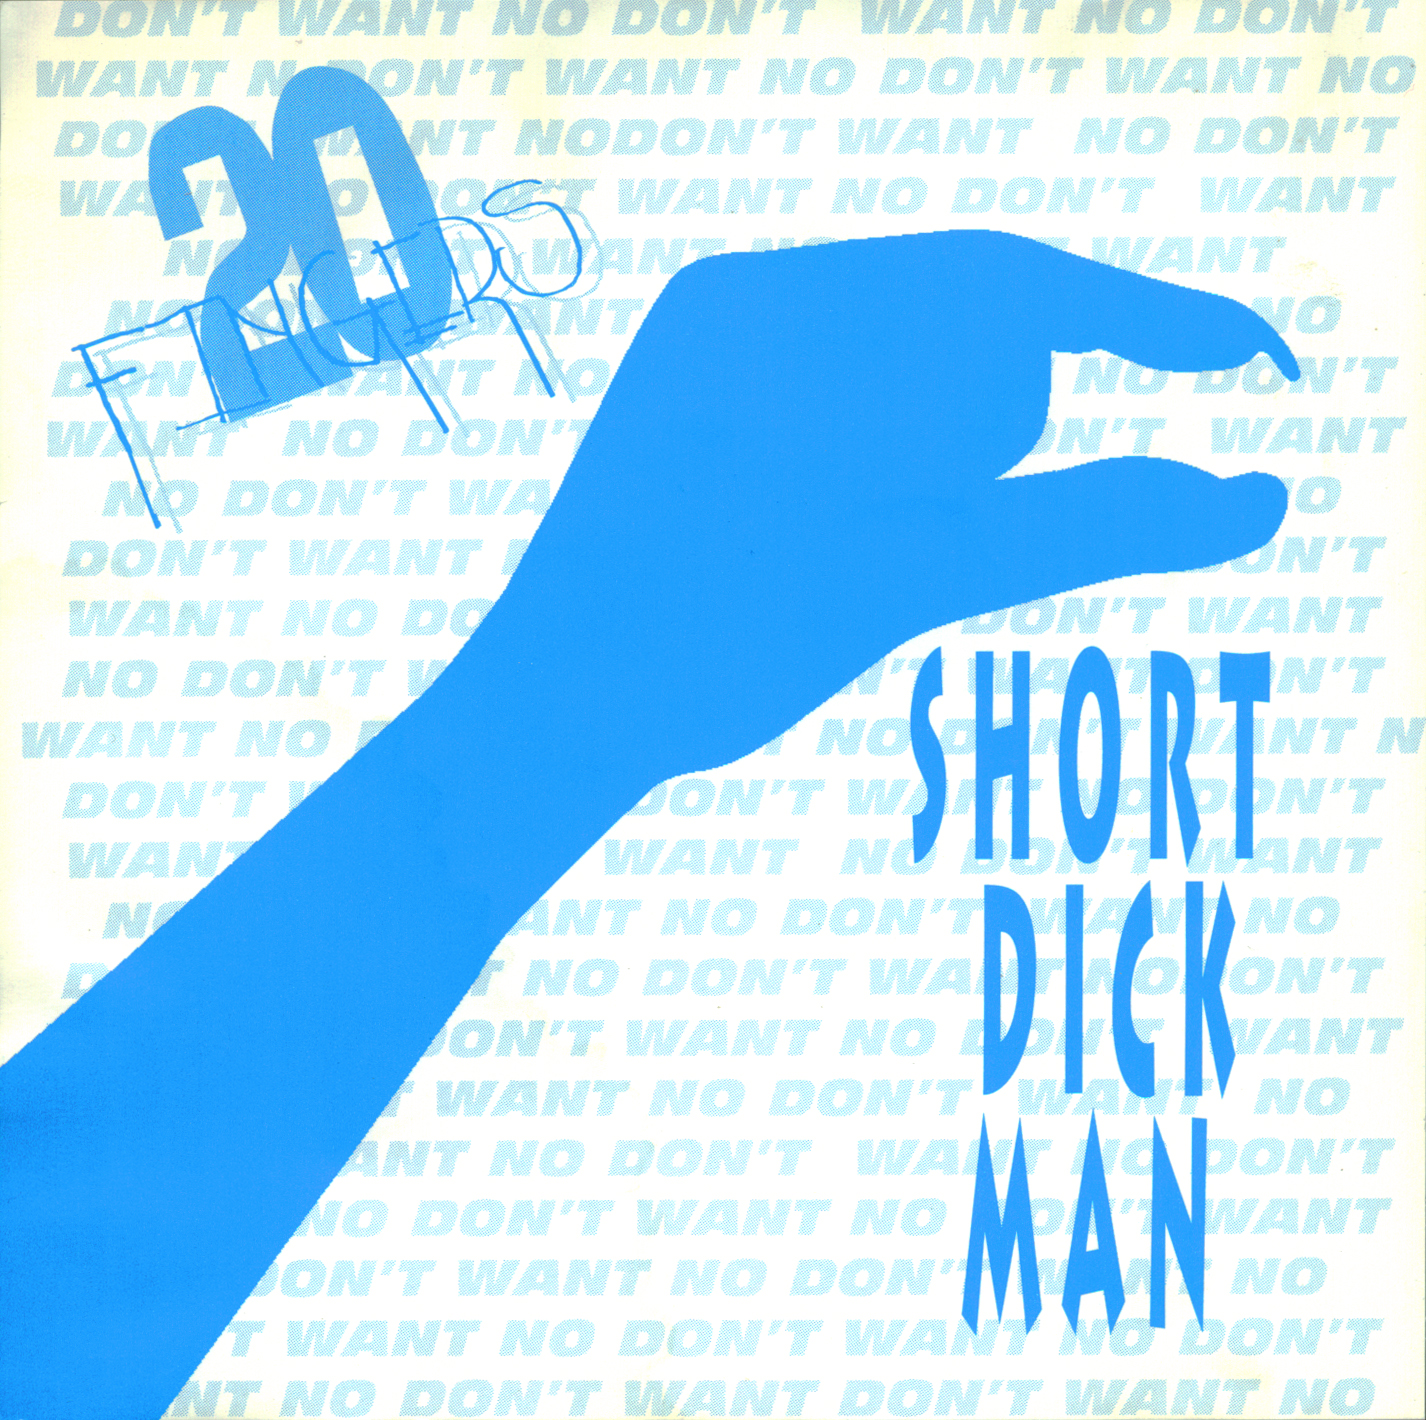 20 fingers feat gillette short dick man - 1 1